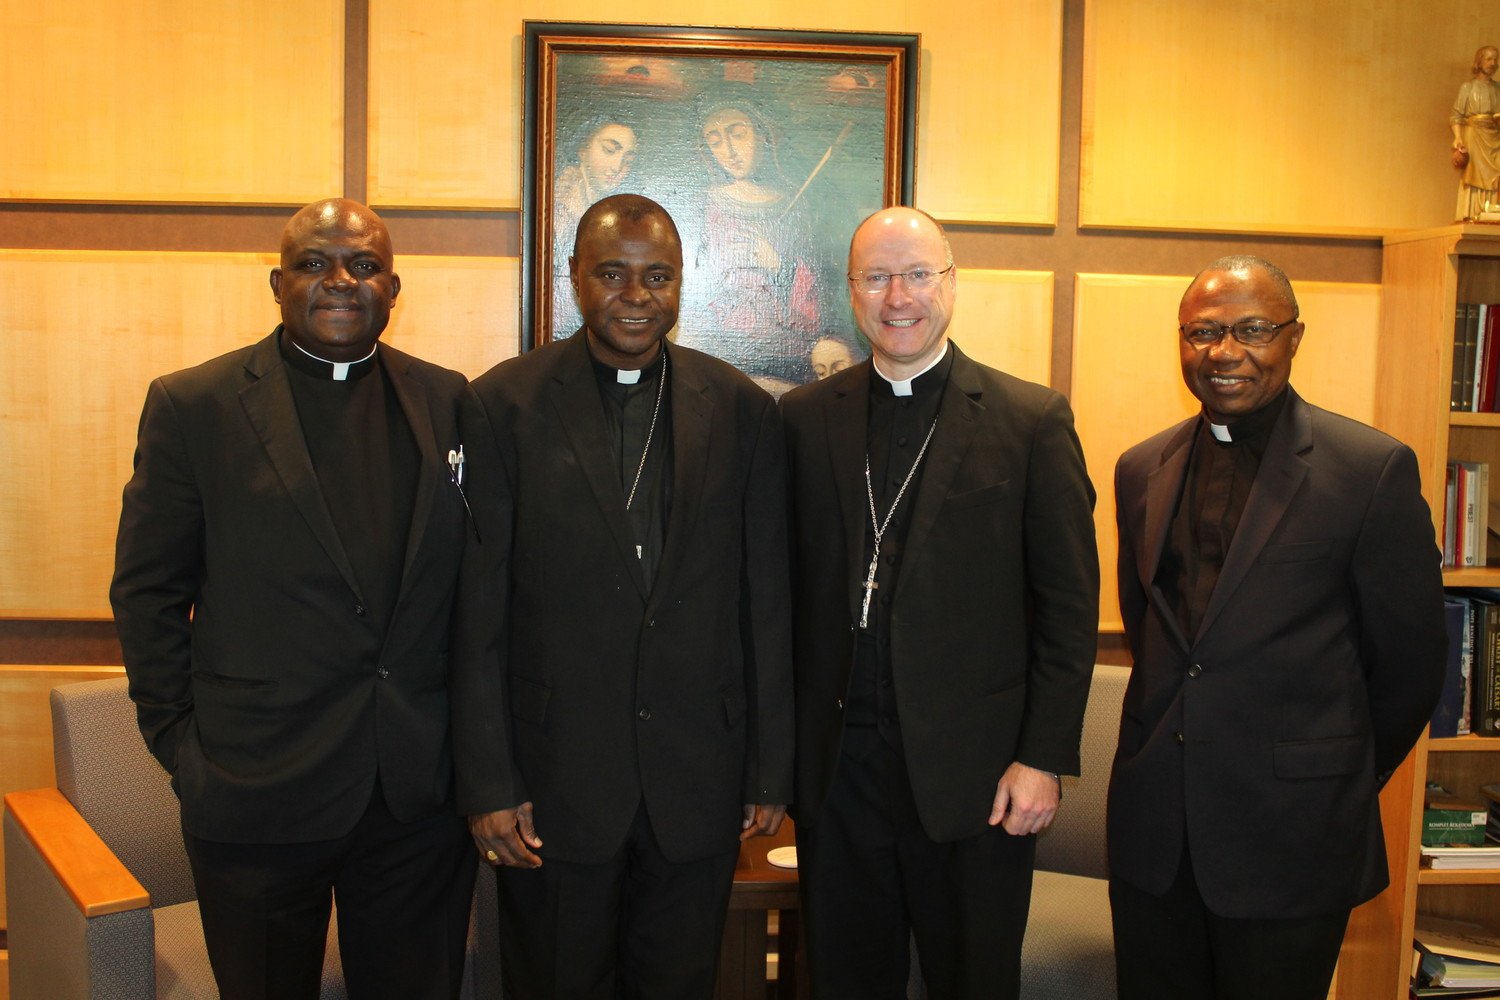 Father Patrick Adejoh, Bishop Anthony Adaji of Idah, Nigeria, Bishop W. Shawn McKnight and Father Joseph Abah meet in Bishop McKnight's office Oct. 11. Fathers Adejoh and Abah, priests of the Idah diocese, are serving in the Jefferson City diocese.